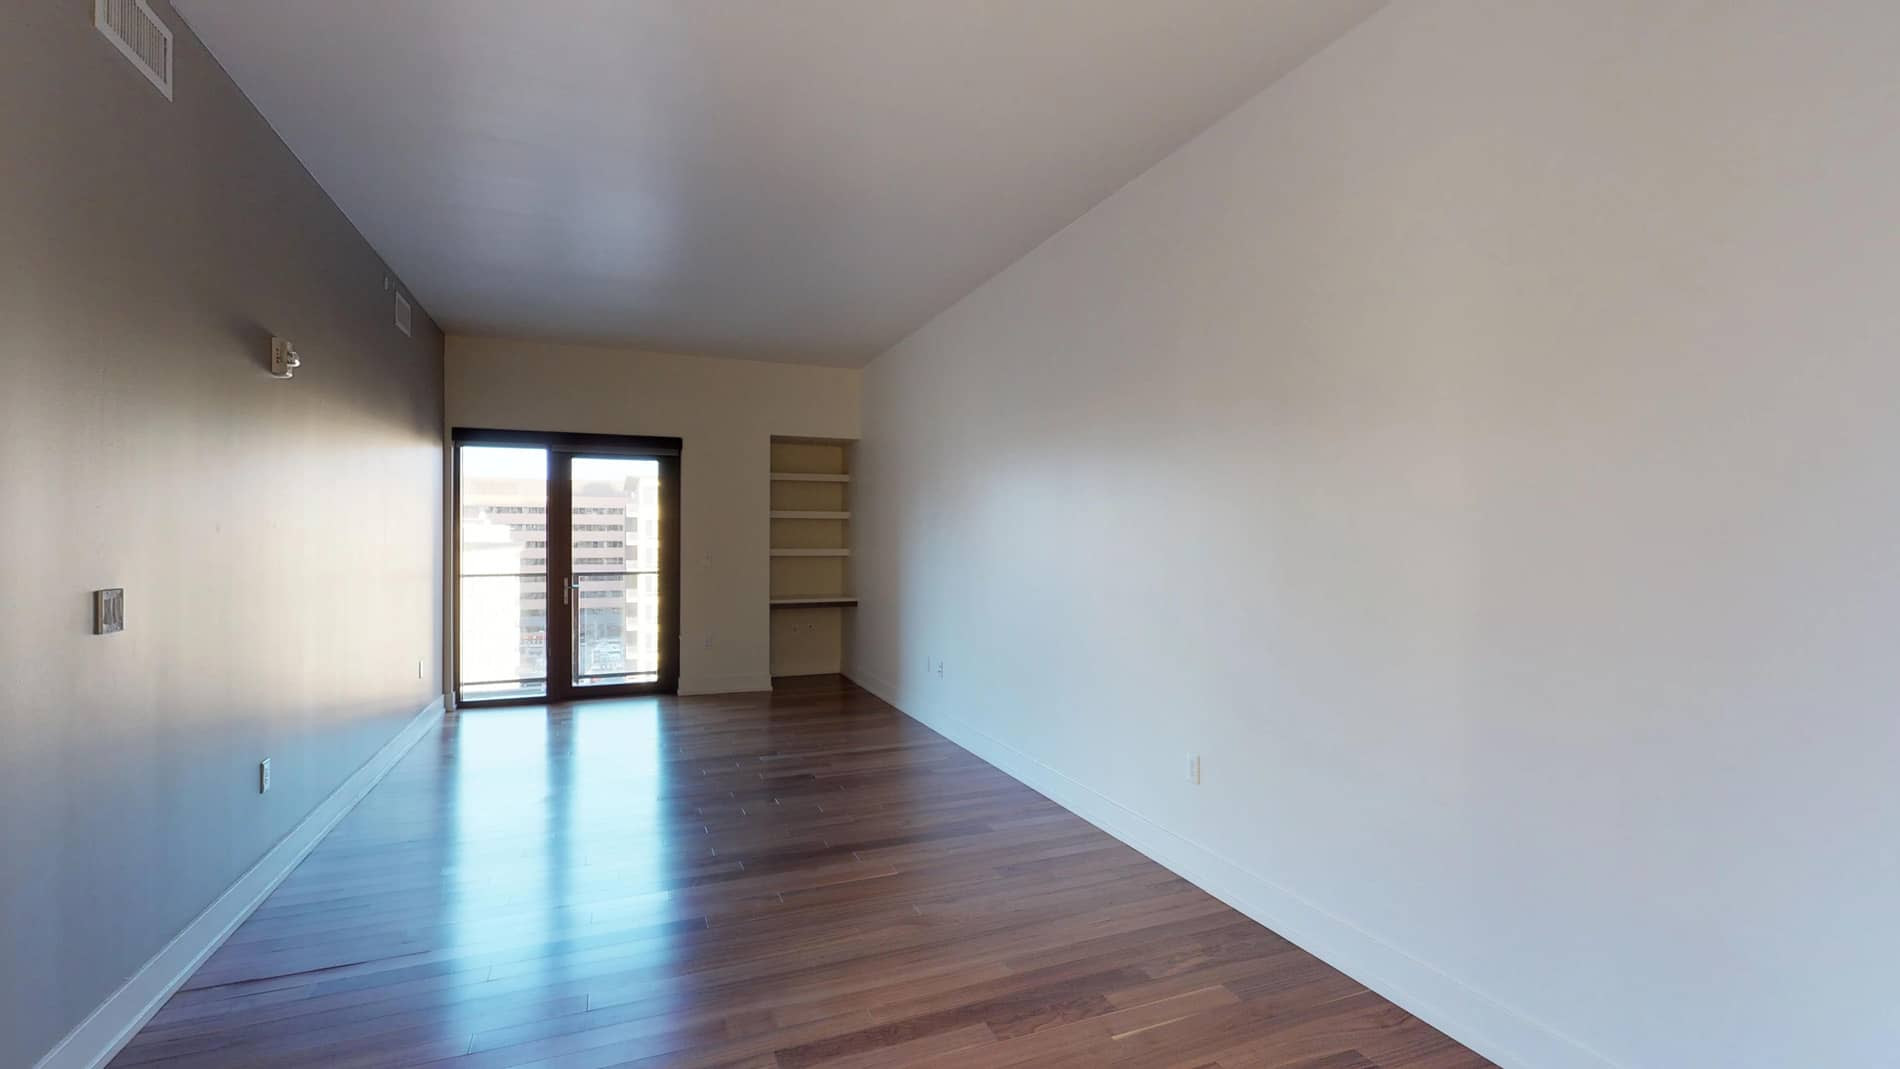 hardwood floor installation cost denver of apartments and pricing for steele creek denver pertaining to a1n 04 steele creek 815 a1n 2017 living room 2 mp